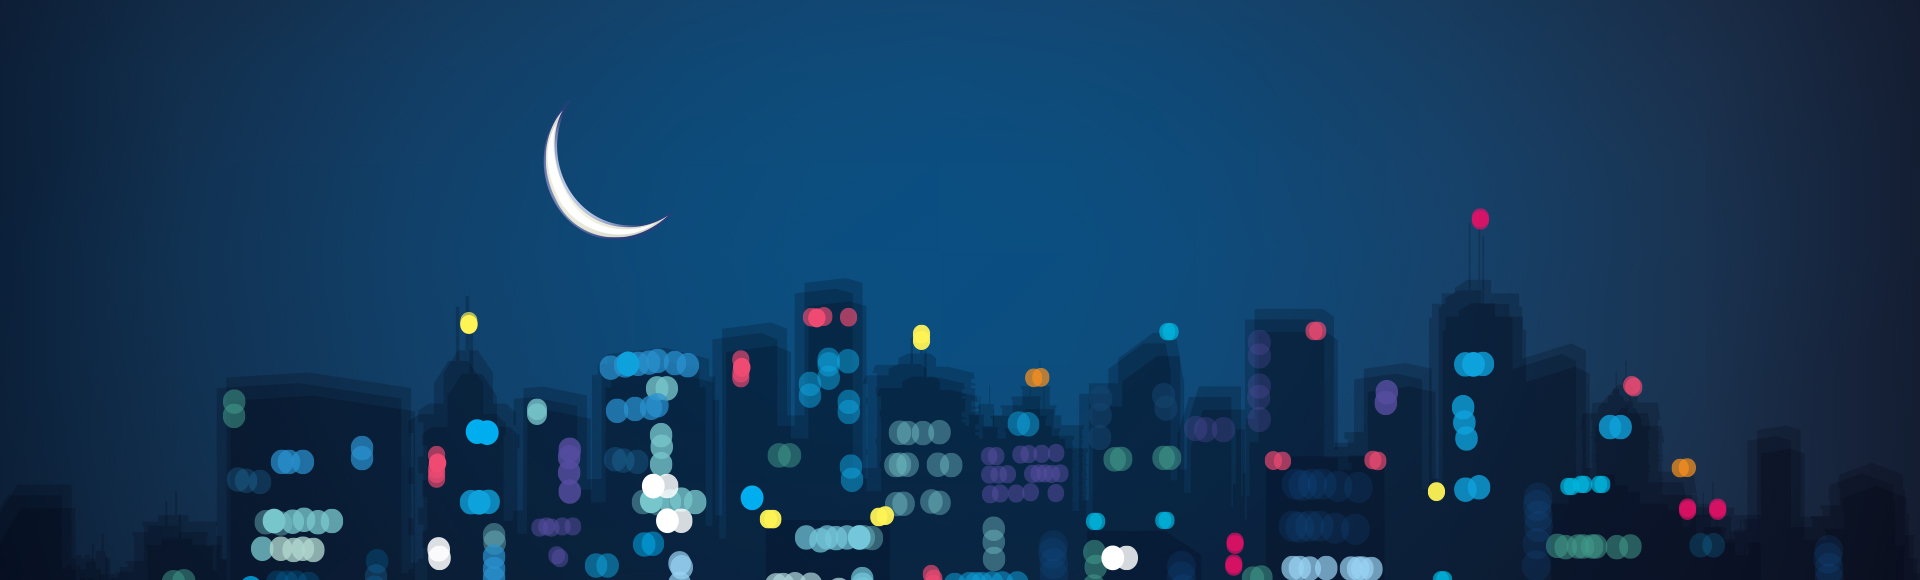 Illustrated city night-time sky and crescent moon hang over buildings indicating overnight shift for Fingercheck's new time card feature.